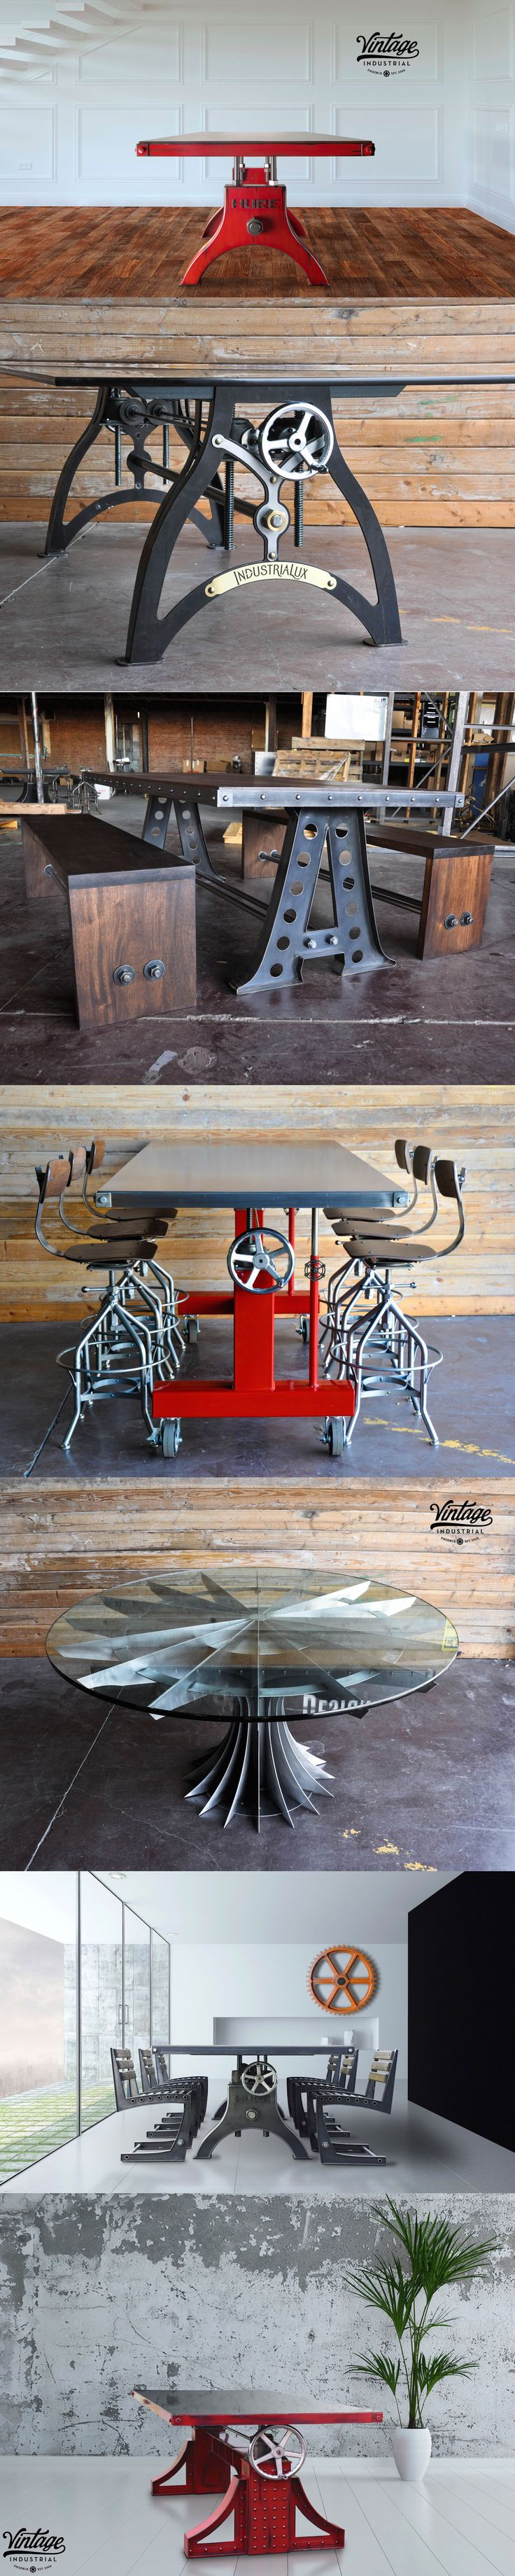 Dining tables designed and built by Vintage Industrial in Phoenix. We build to order and can customize our designs to suit your needs.